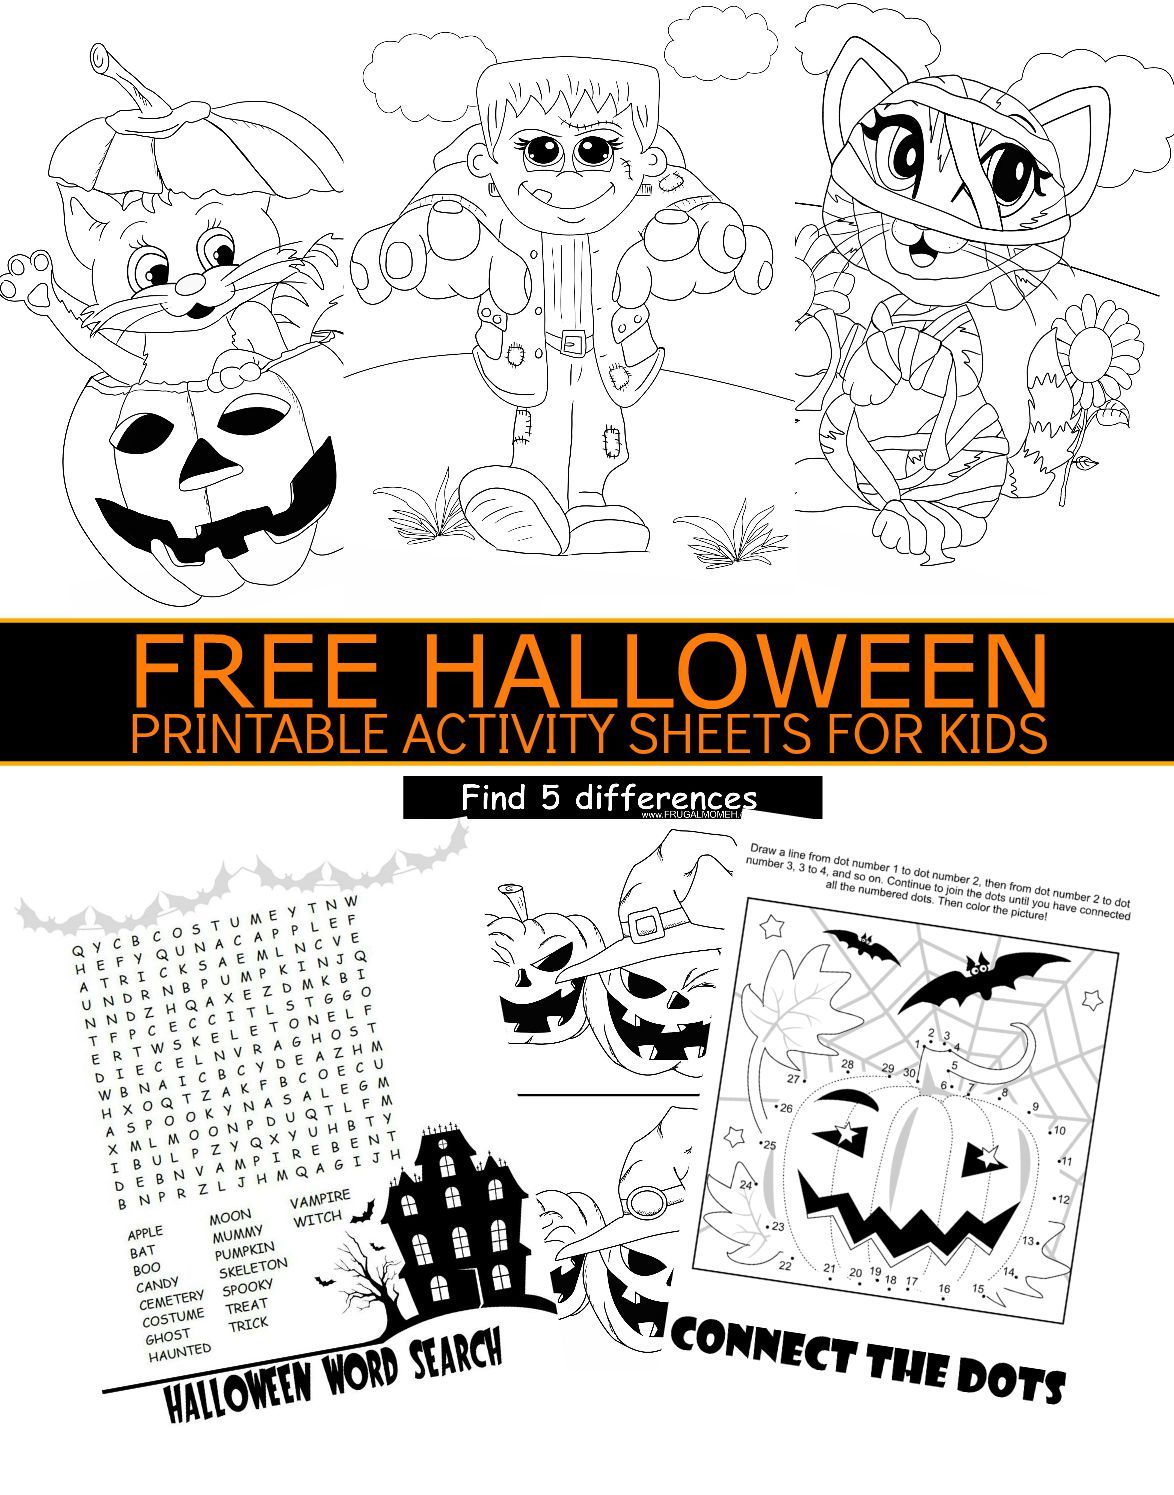 Free Halloween Printable Activity Sheets For Kids Holidays